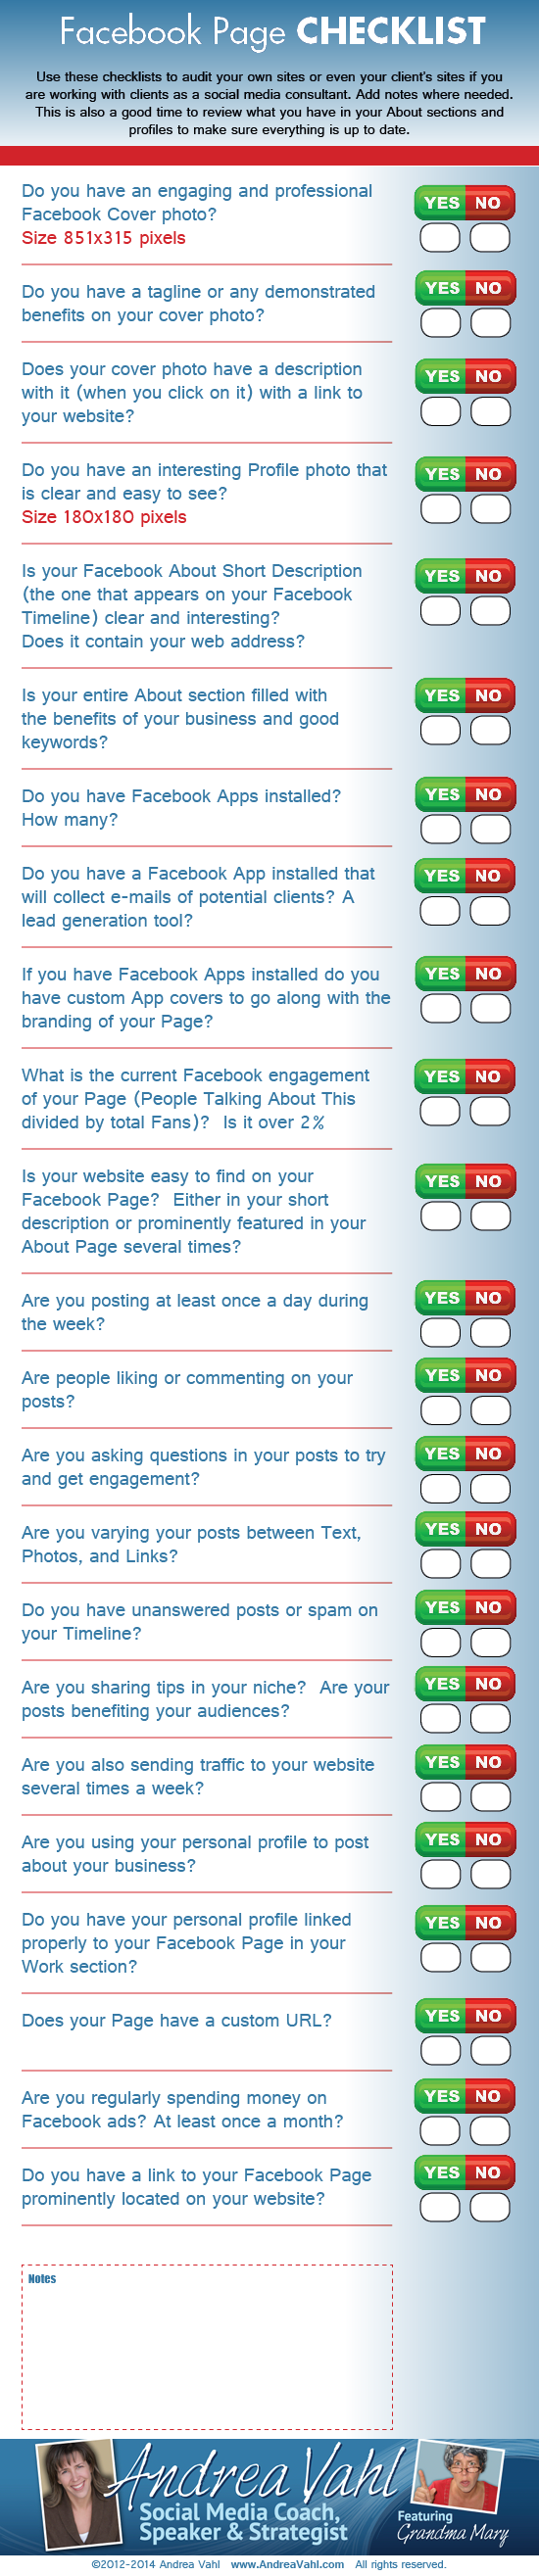 Facebook Page Checklist [Infographic]